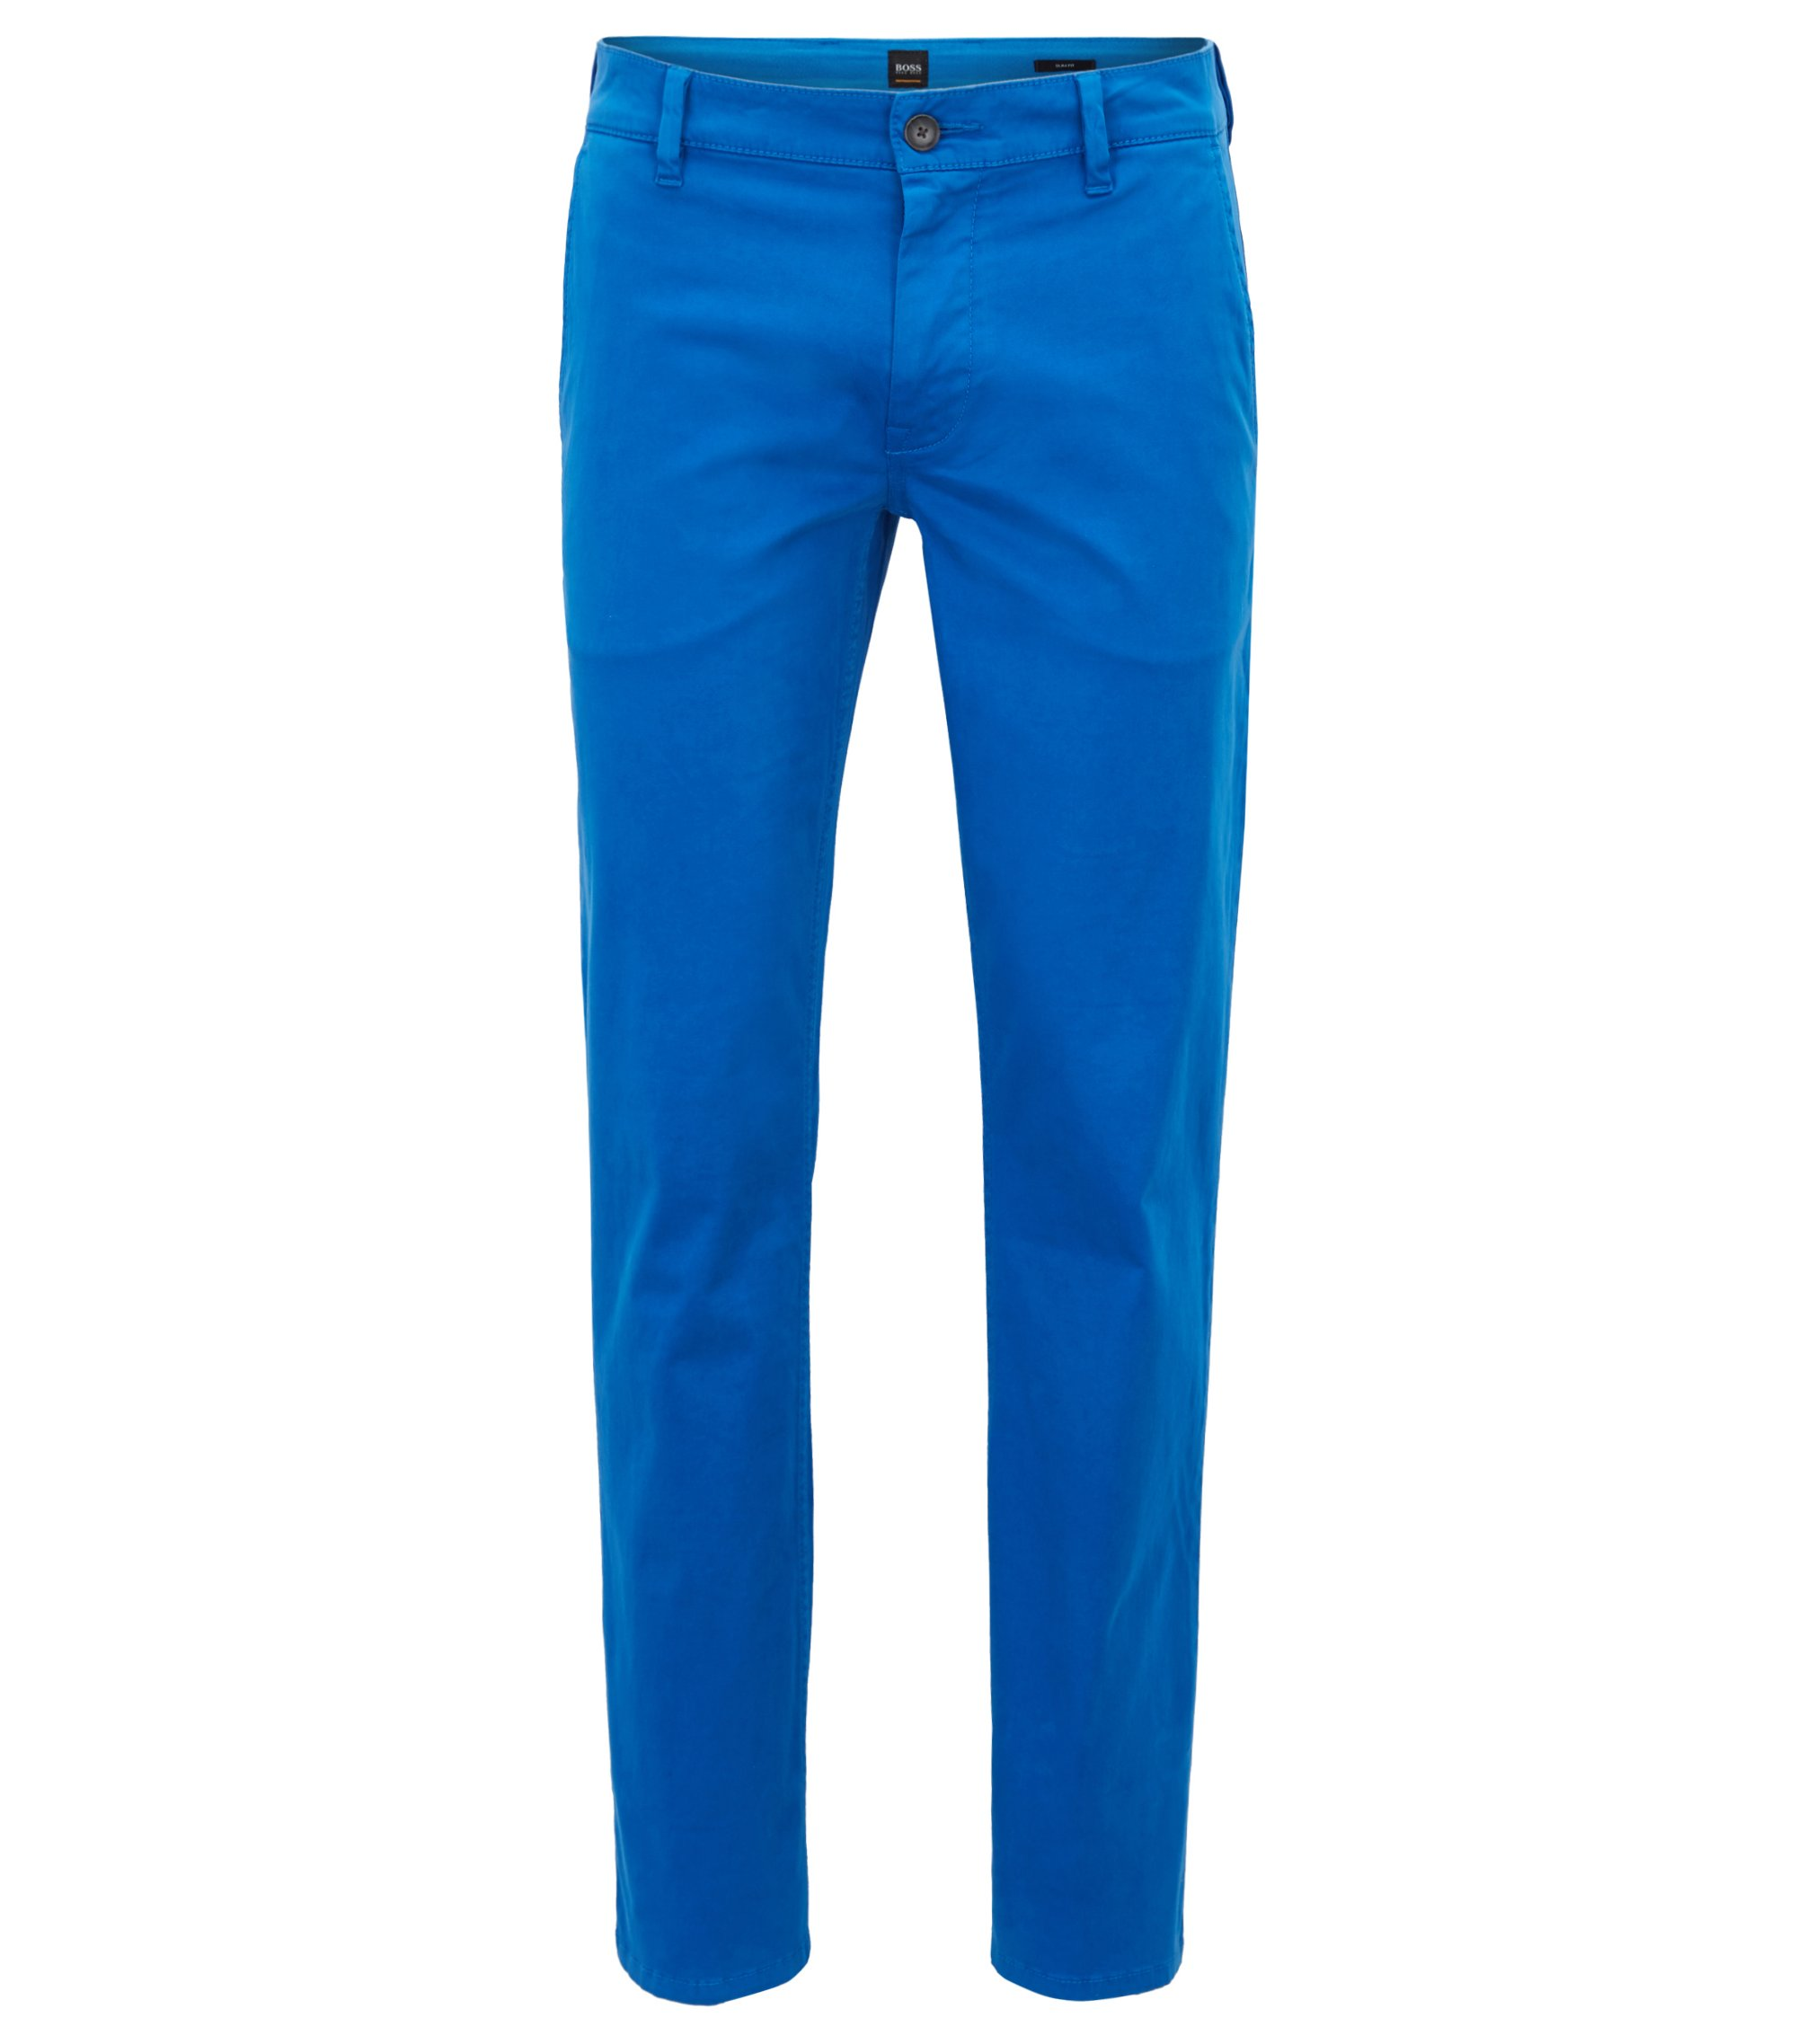 Chino casual Slim Fit en coton stretch brossé, Bleu